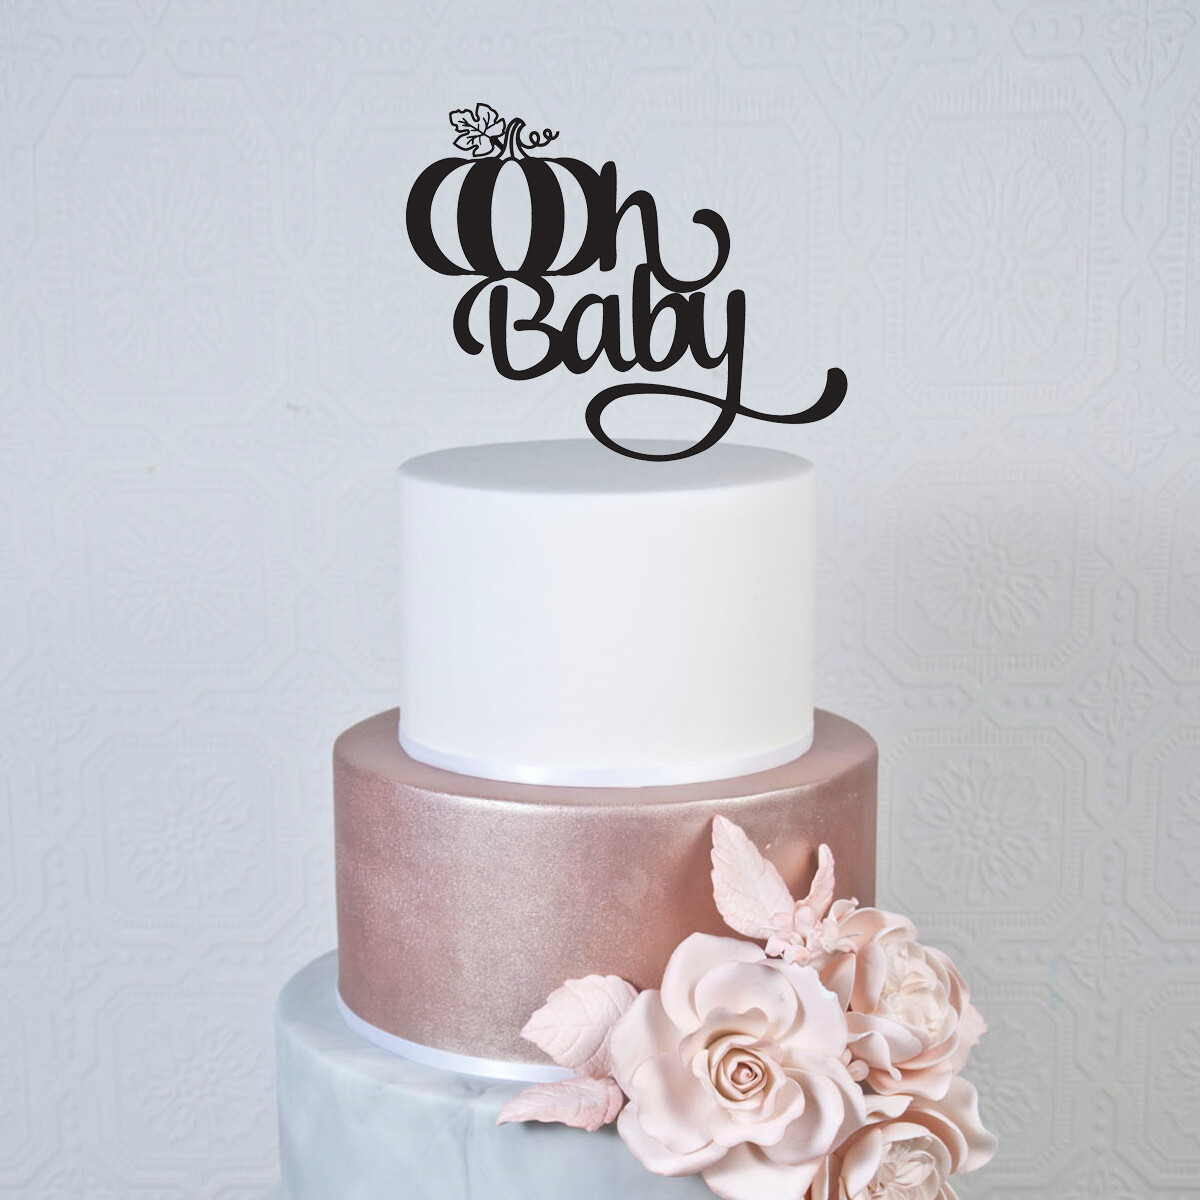 Oh Baby pumpkin Cake Topper